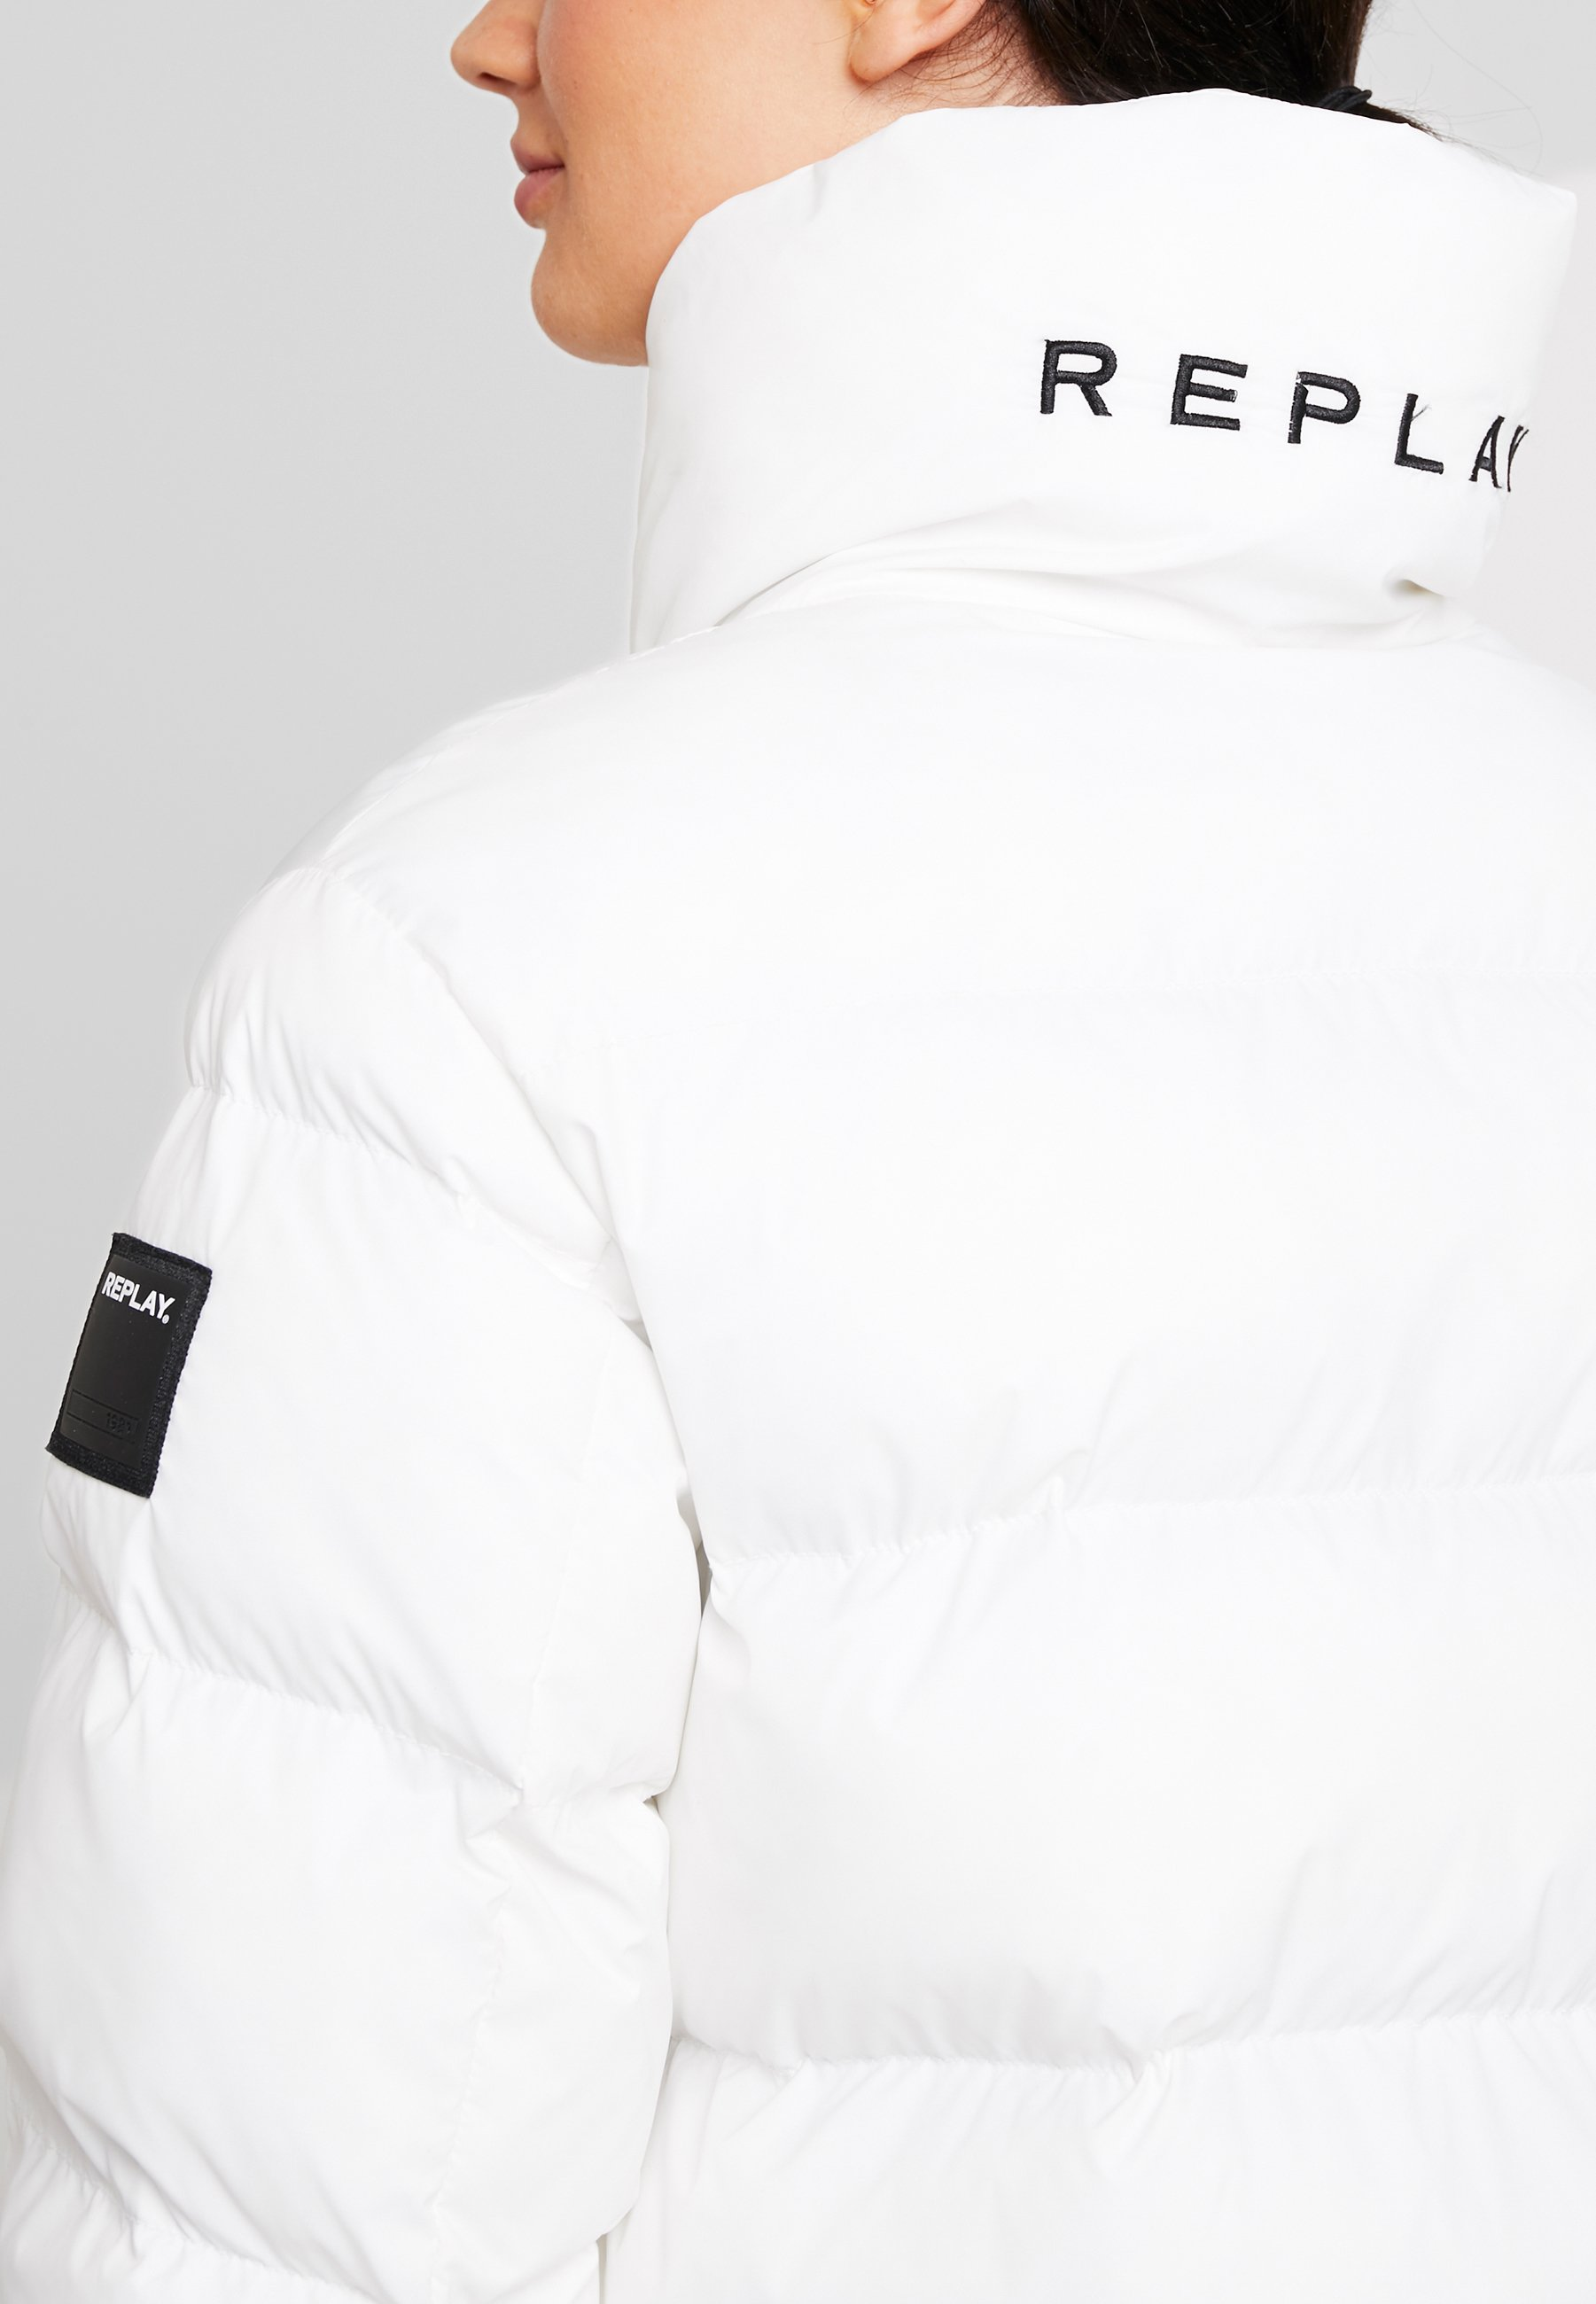 Replay JacketGiacca Invernale Replay Butter Invernale White Butter JacketGiacca qc5R4Lj3A